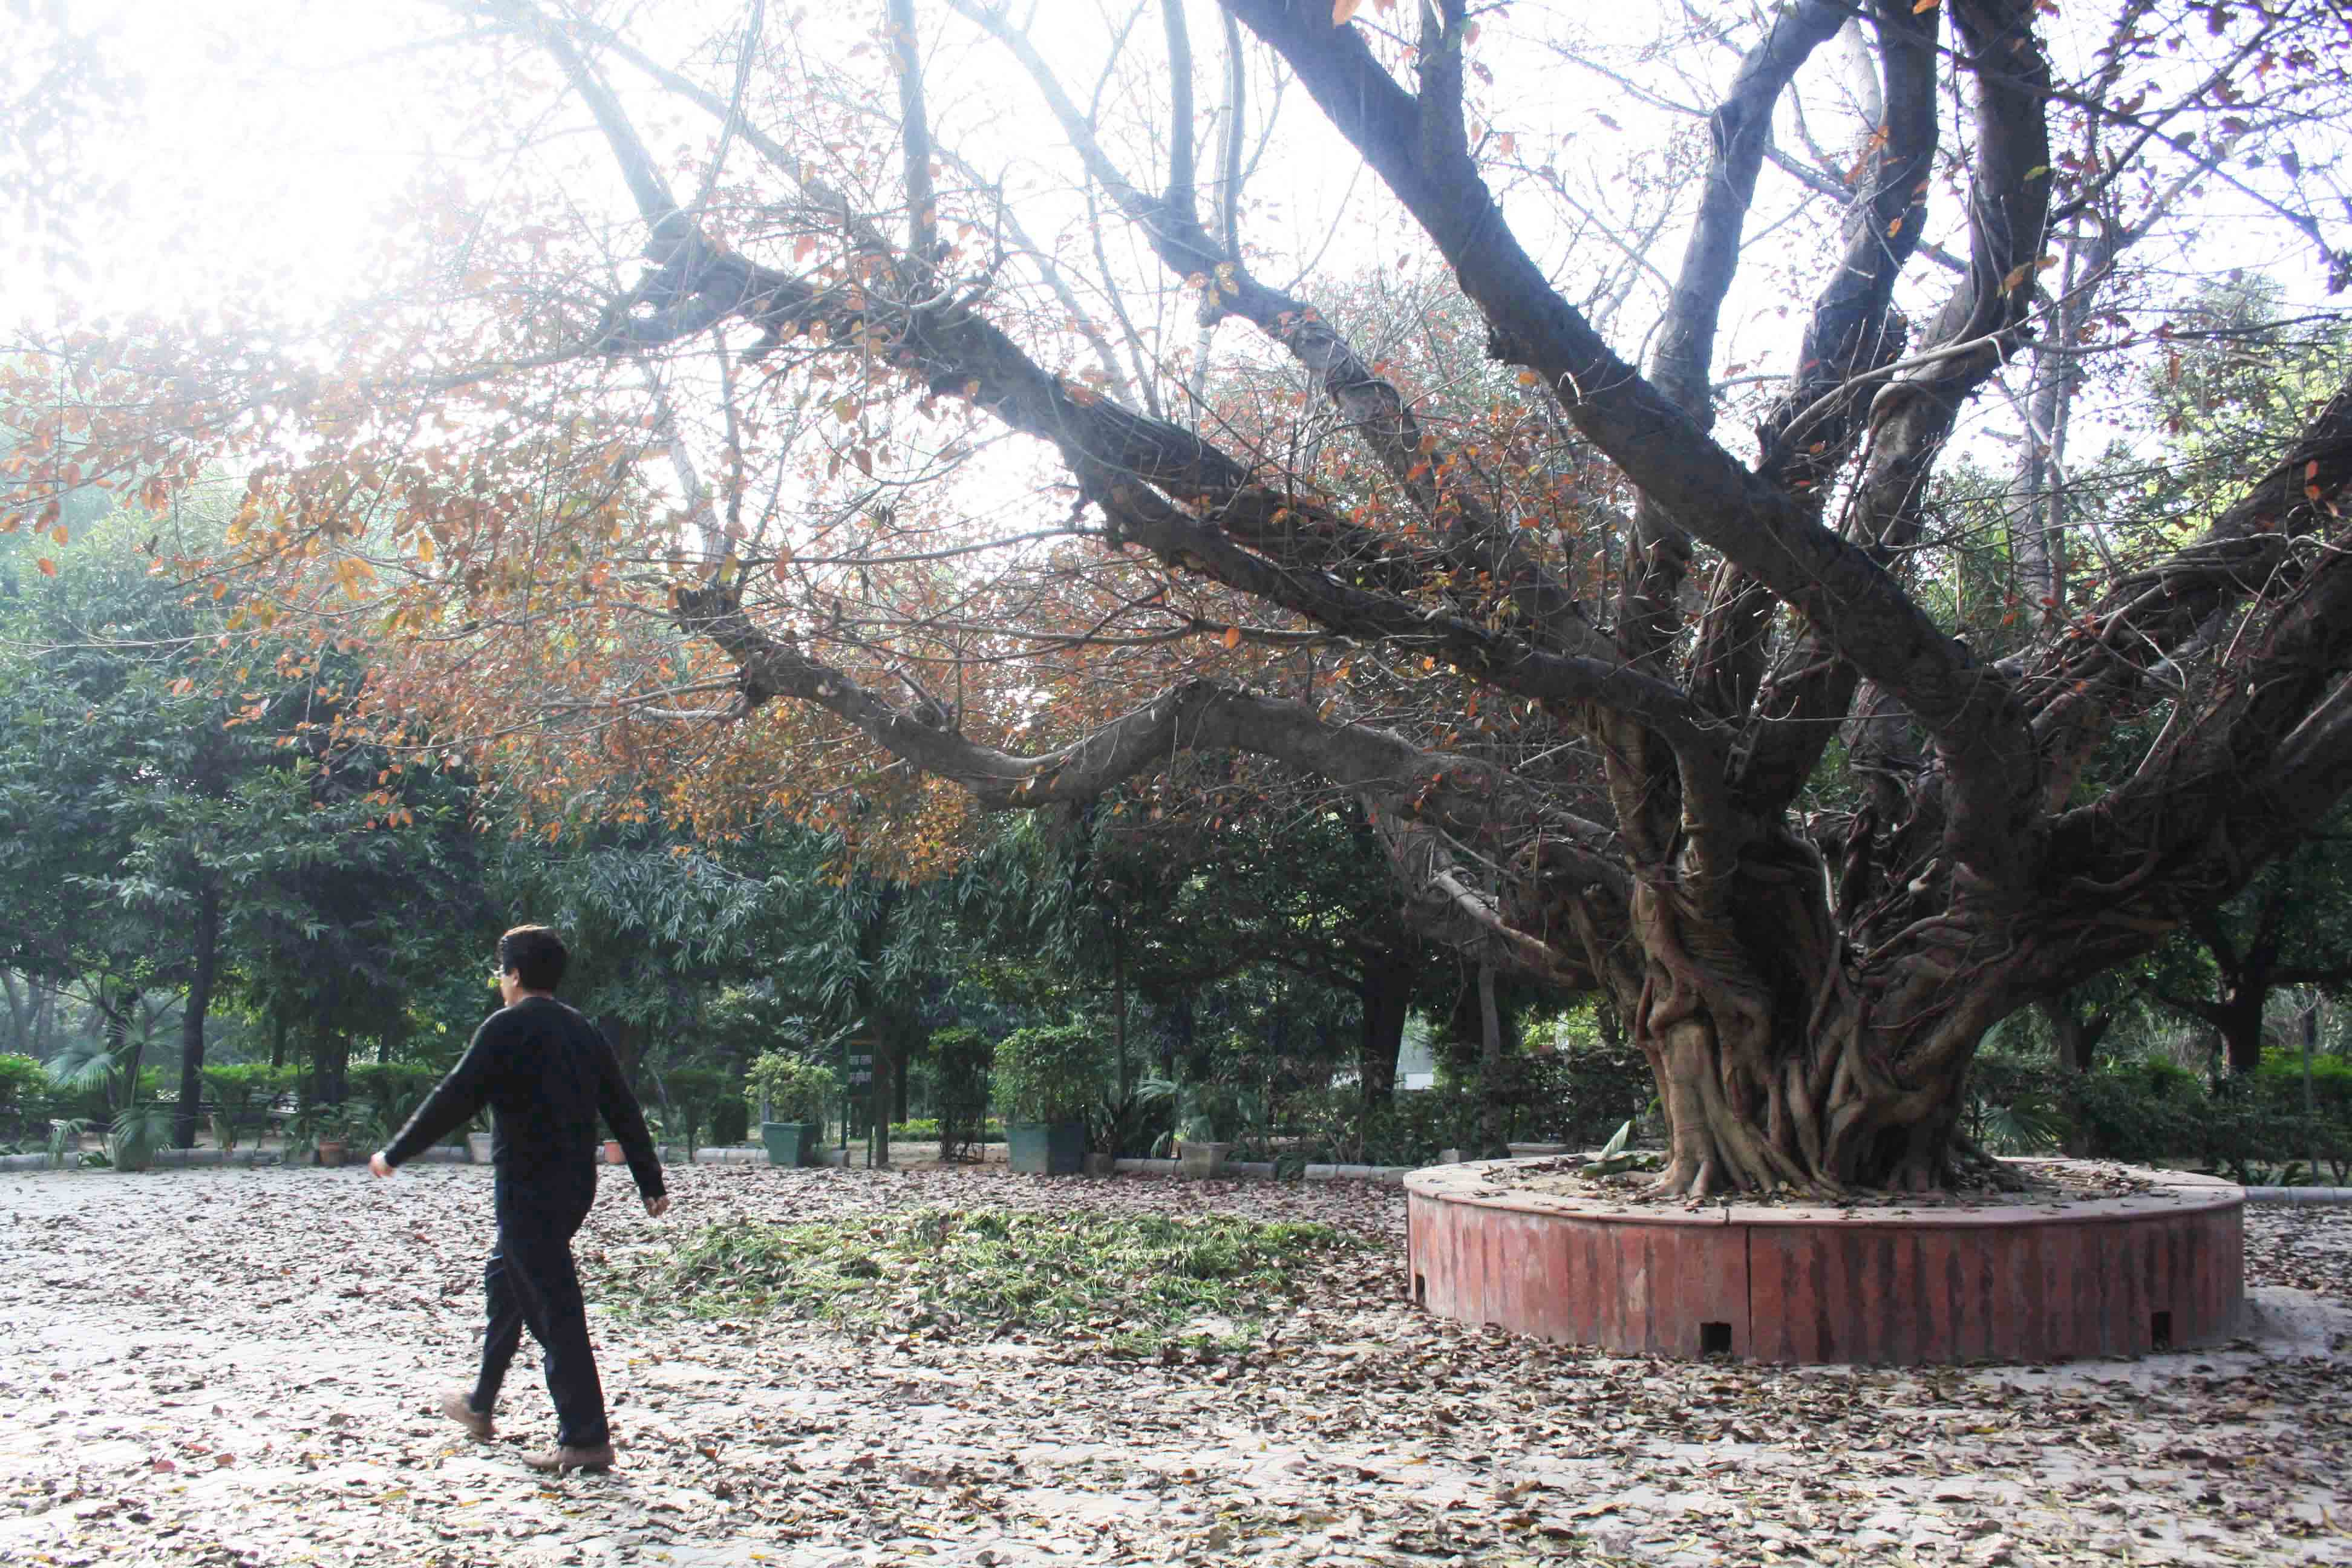 City Nature - The Majestic Pilkhan Tree, Deer Park